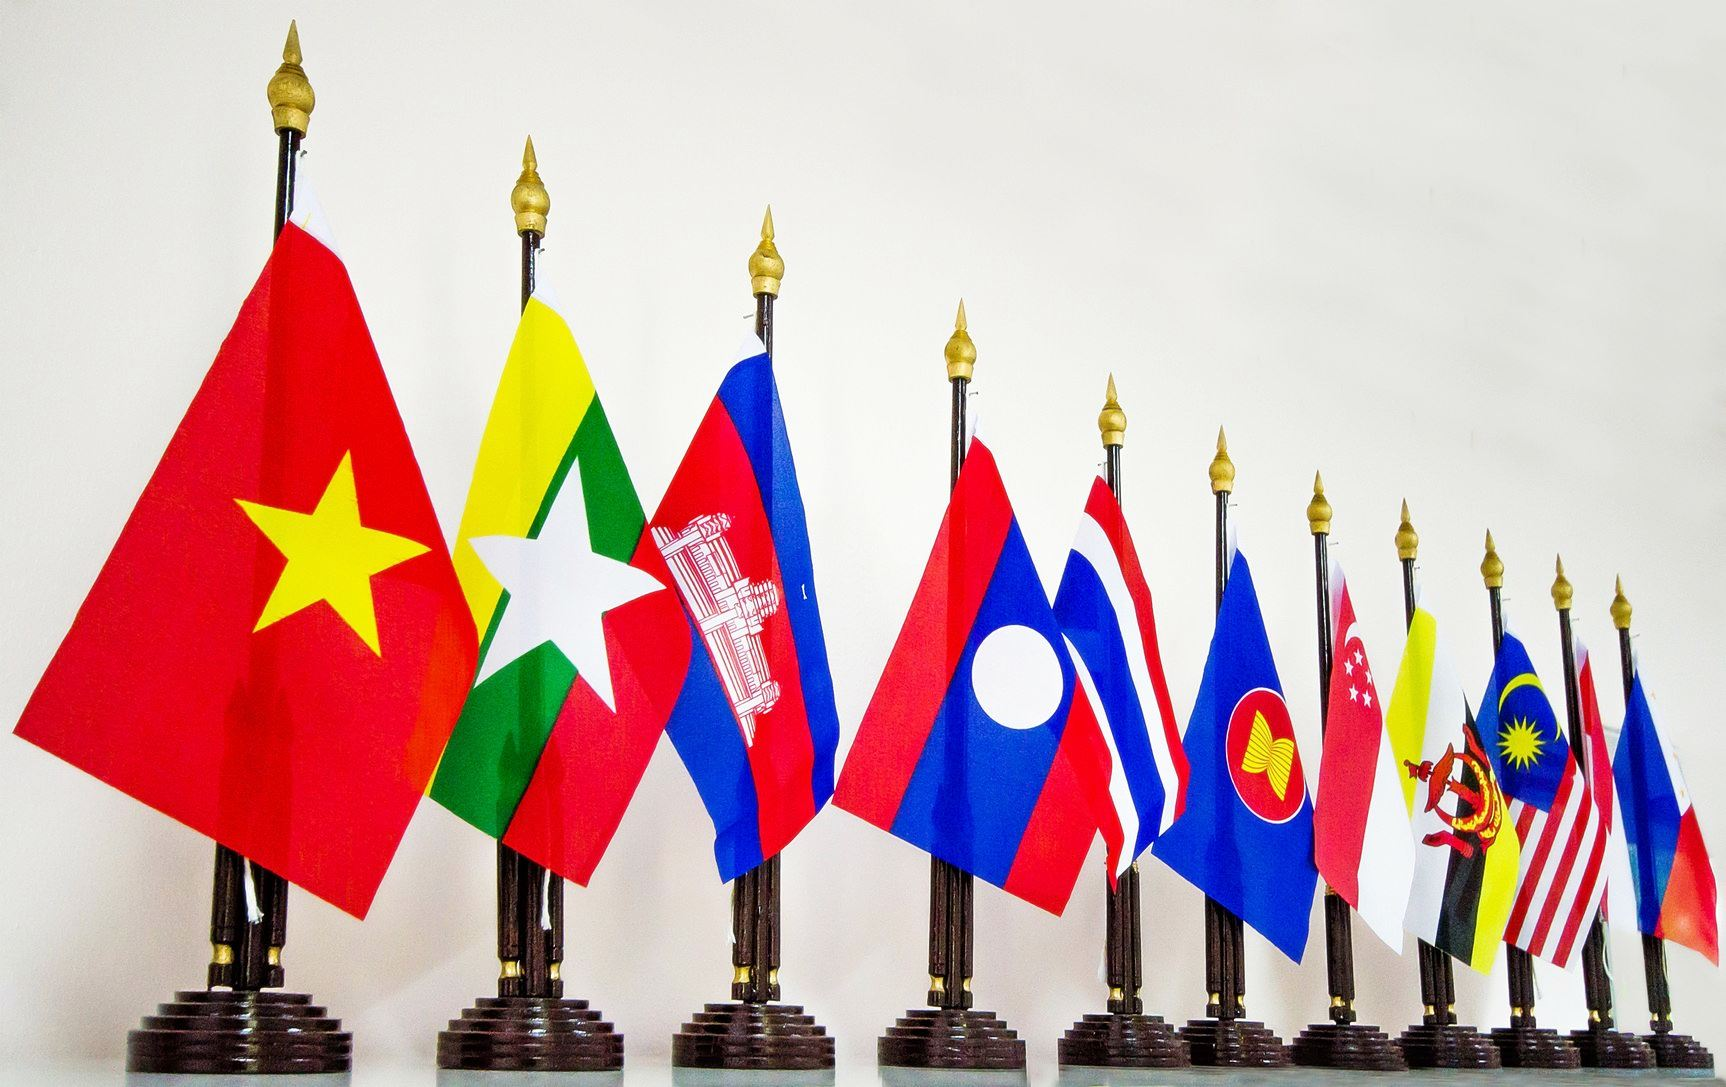 benefit of cambodia joining asean Under the asean economic community (aec), a single regional common market of asean countries will be created by 2015 the regional integration's objective is to create a competitive market of over 600 million people in asean countries: brunei, cambodia, indonesia, laos, malaysia, myanmar, the philippines, singapore, thailand, and vietnam.